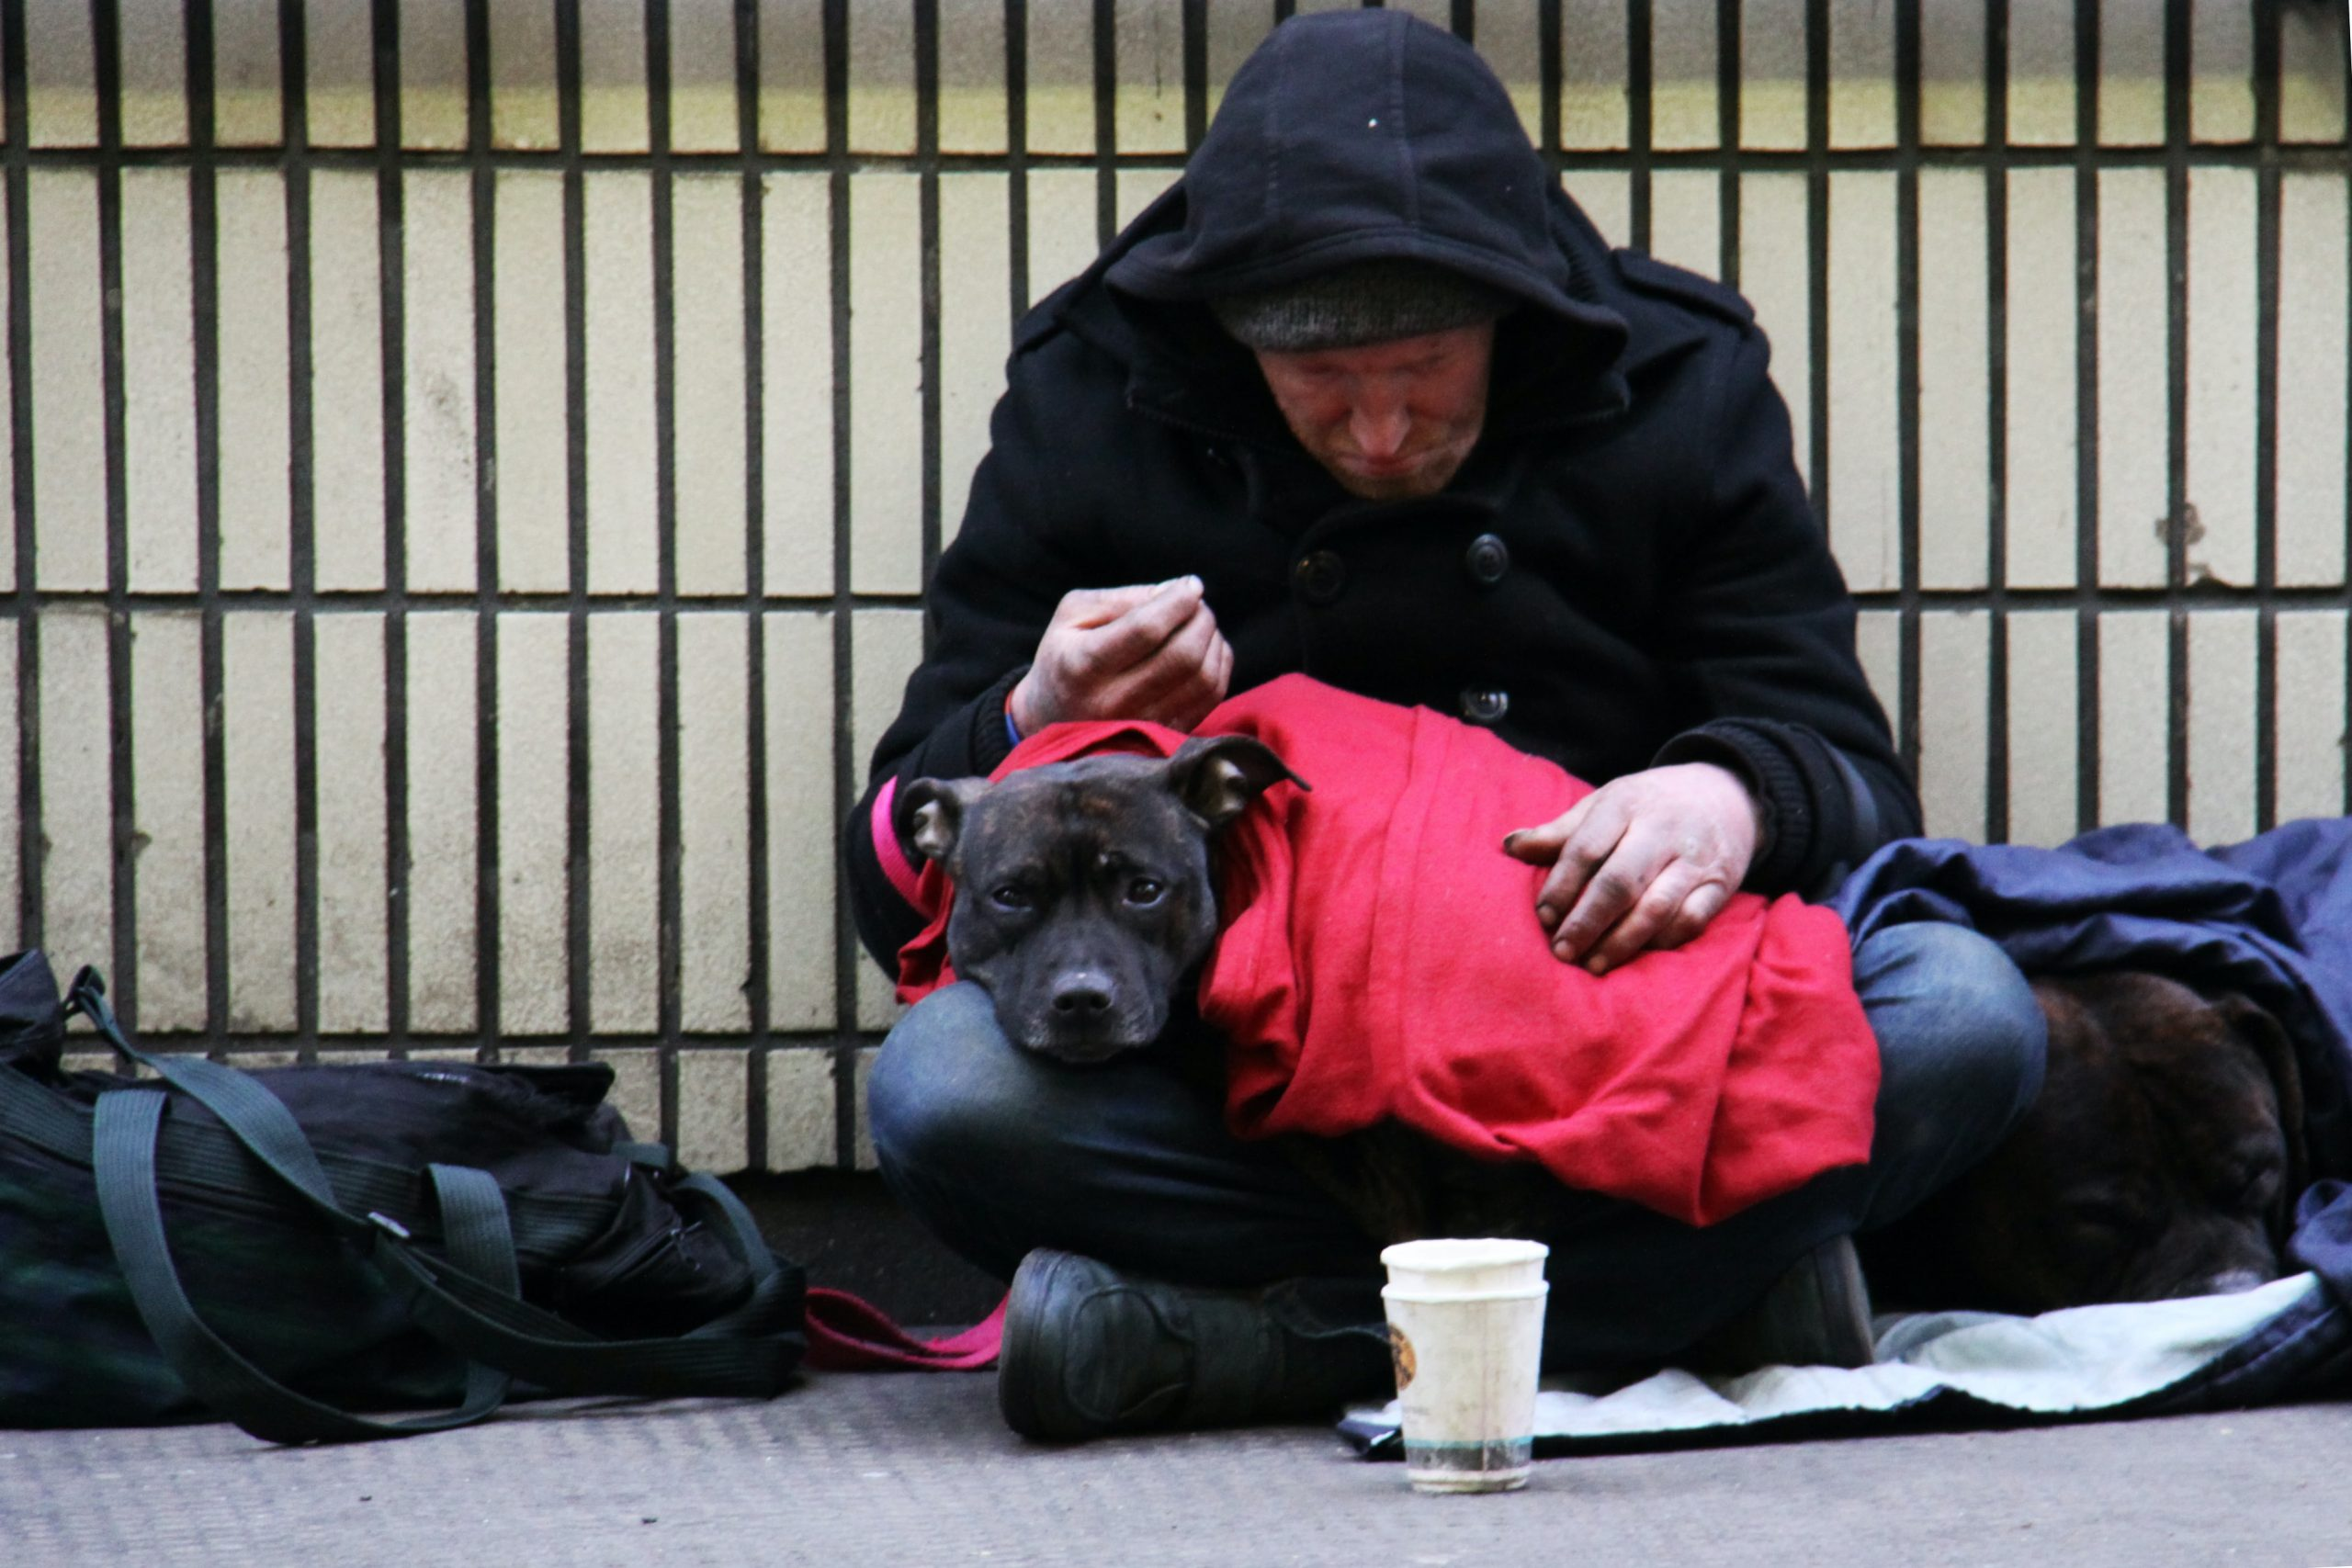 A homneless man sits on the street with his black dog.